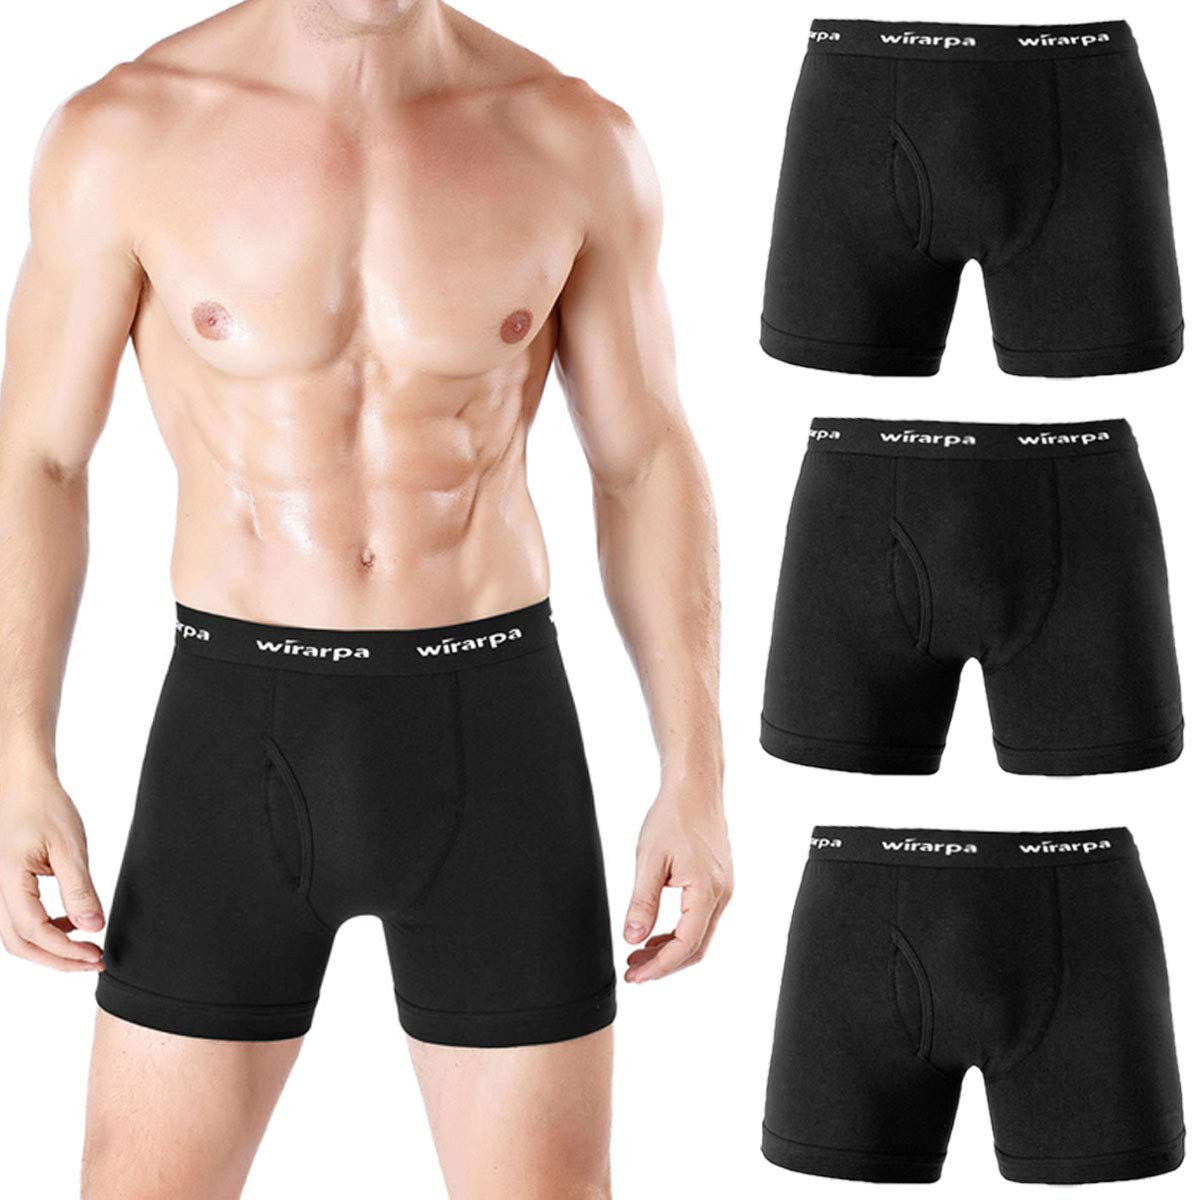 wirarpa Men's 3 Pack Comfy Cotton Stretch Underwear Boxer Brief Open Fly Black 1430